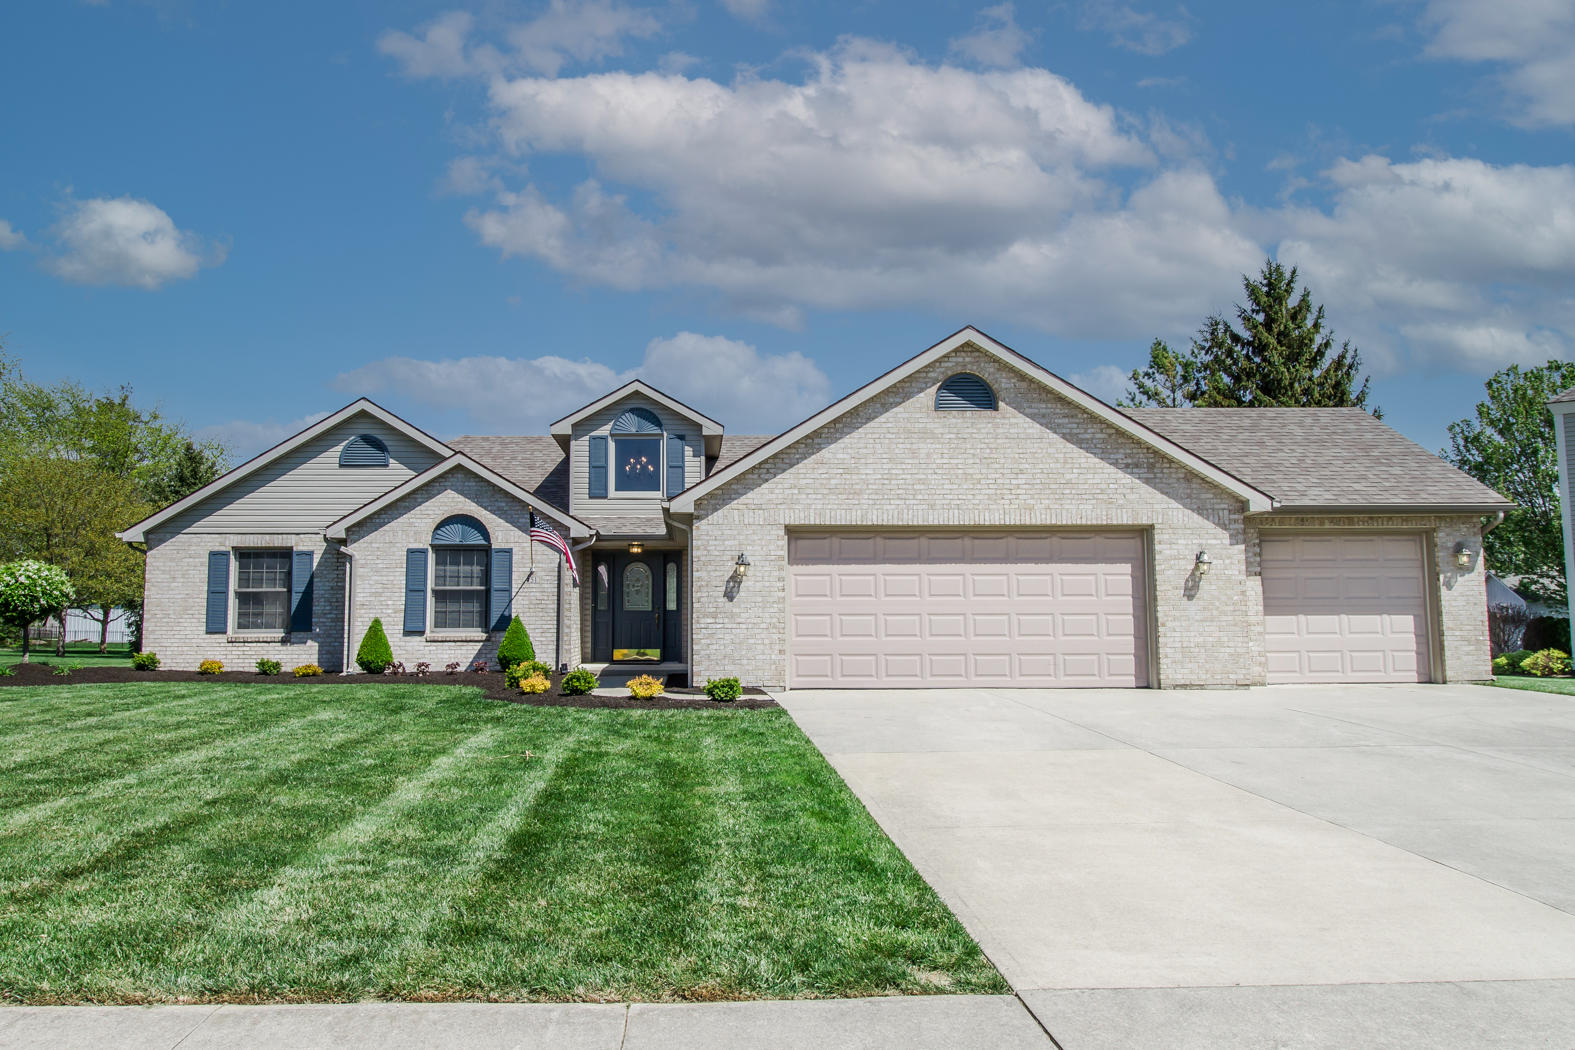 451 Circle Drive Property Photo - Greenville, OH real estate listing